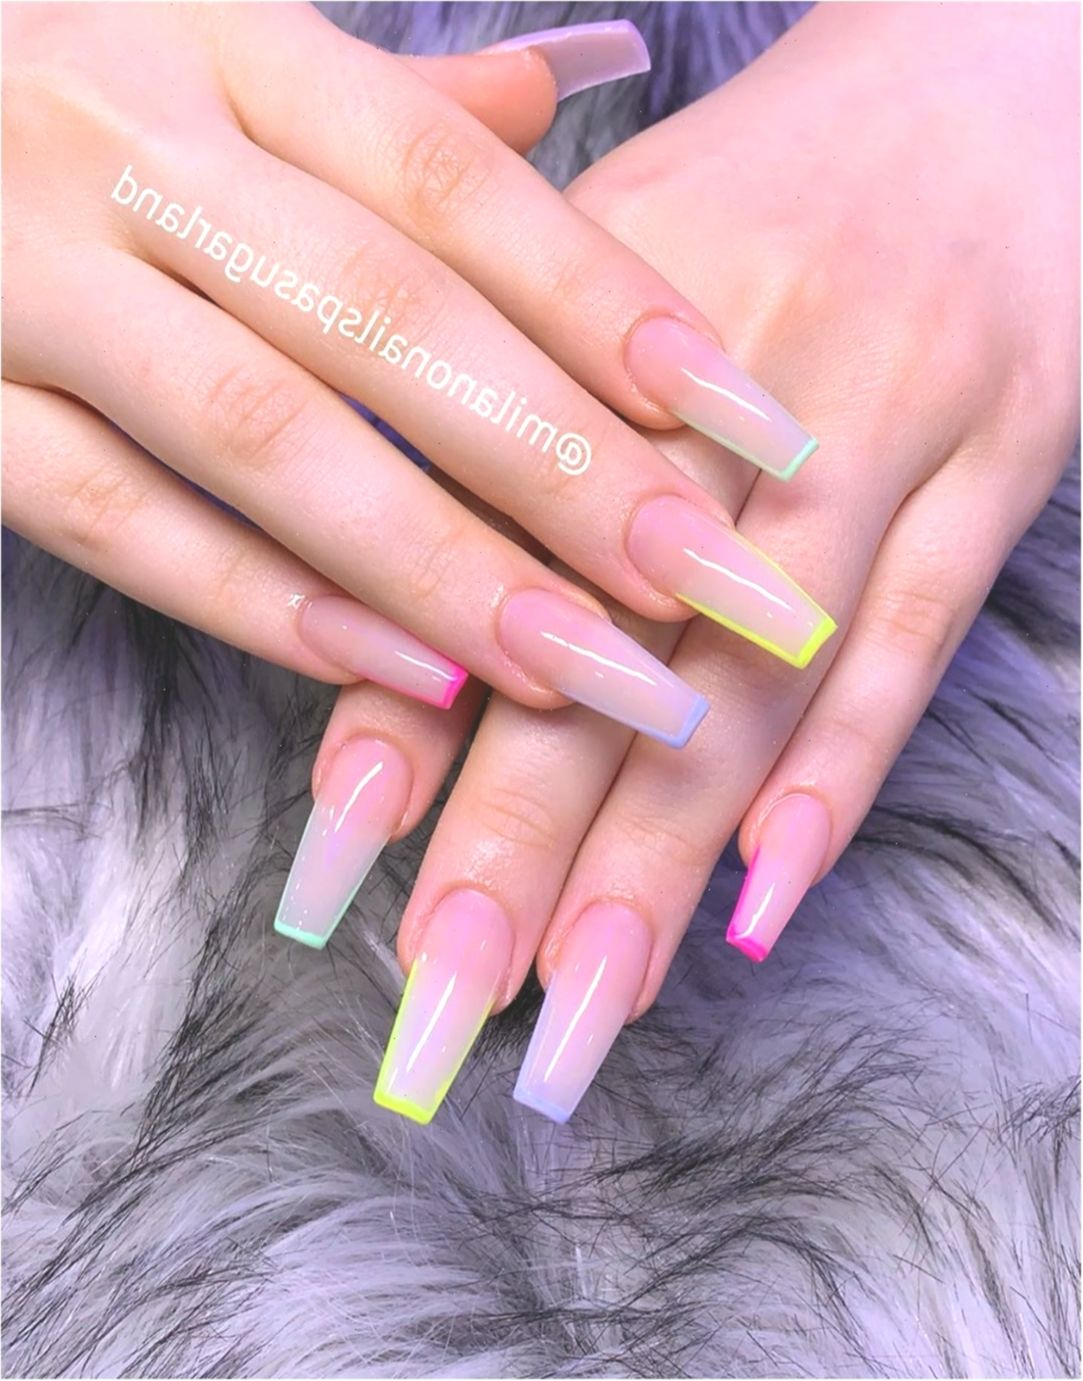 Milano Nail Spa Sugar Land On Instagram Welcome To Milano Nail Spa Ngel Longnails In 2020 Ombre Acrylic Nails Best Acrylic Nails Pink Acrylic Nails